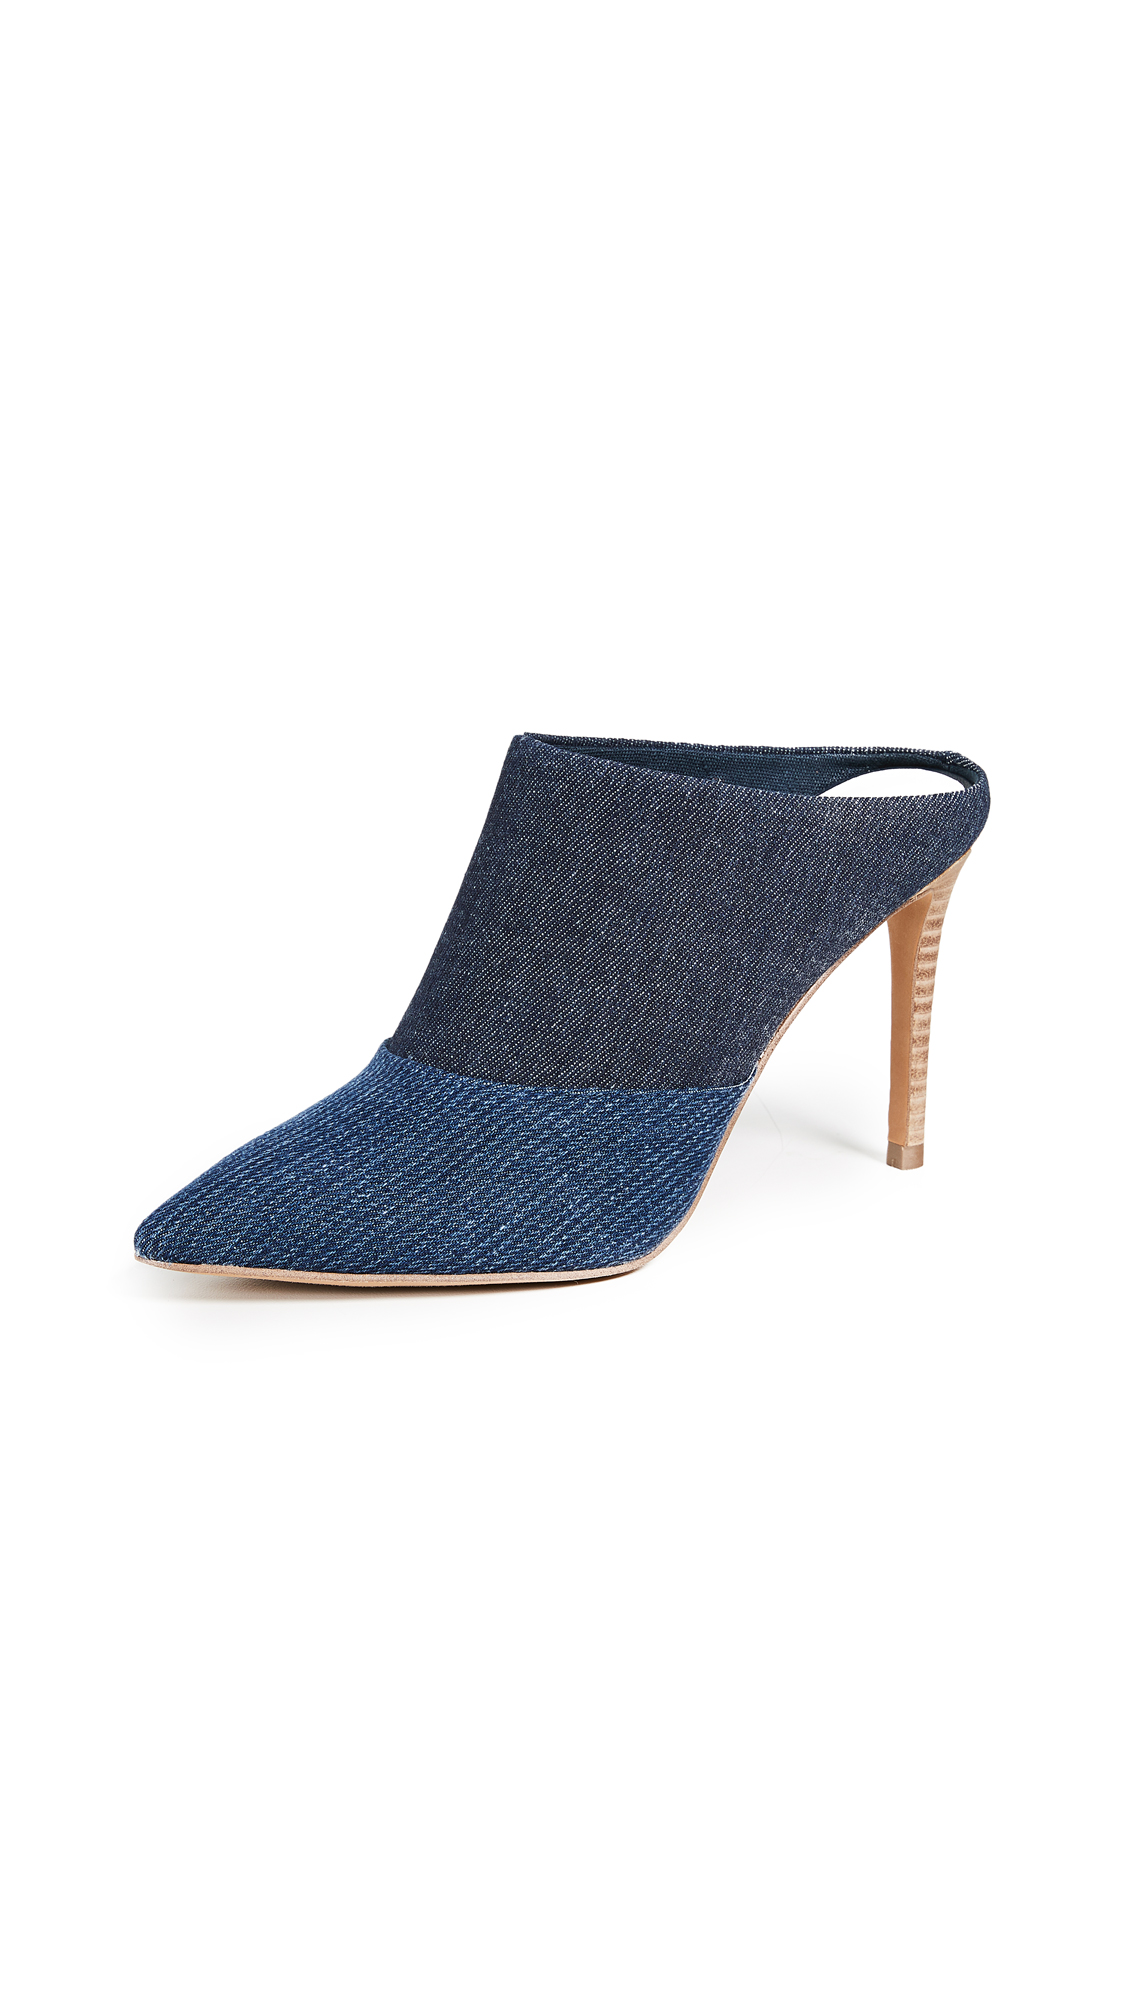 Dolce Vita Cinda Point Toe Mules In Indigo